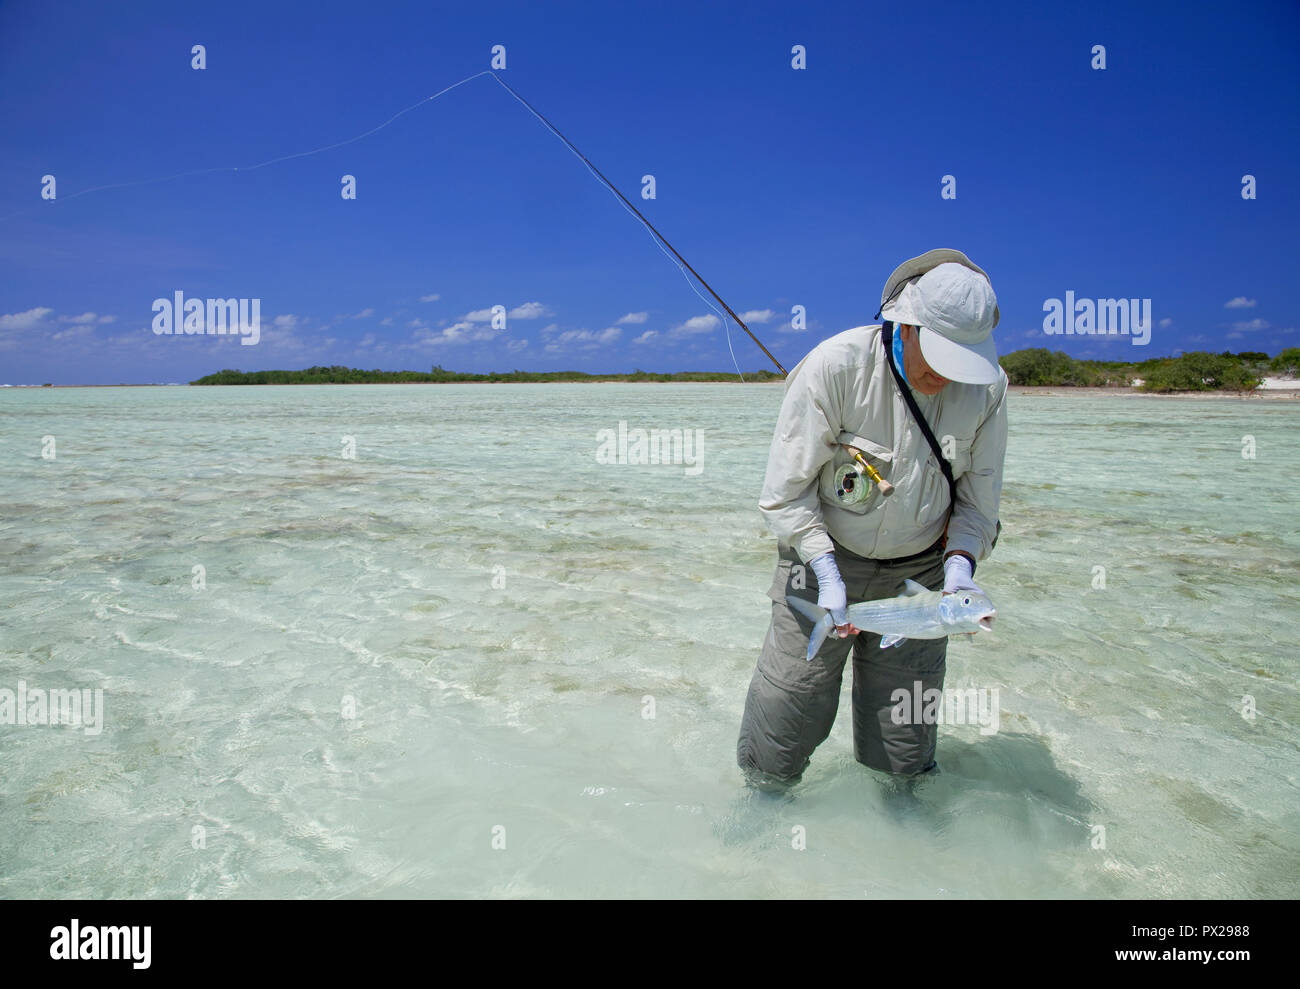 Fly fishing for bonefish in the Bahamas - Stock Image